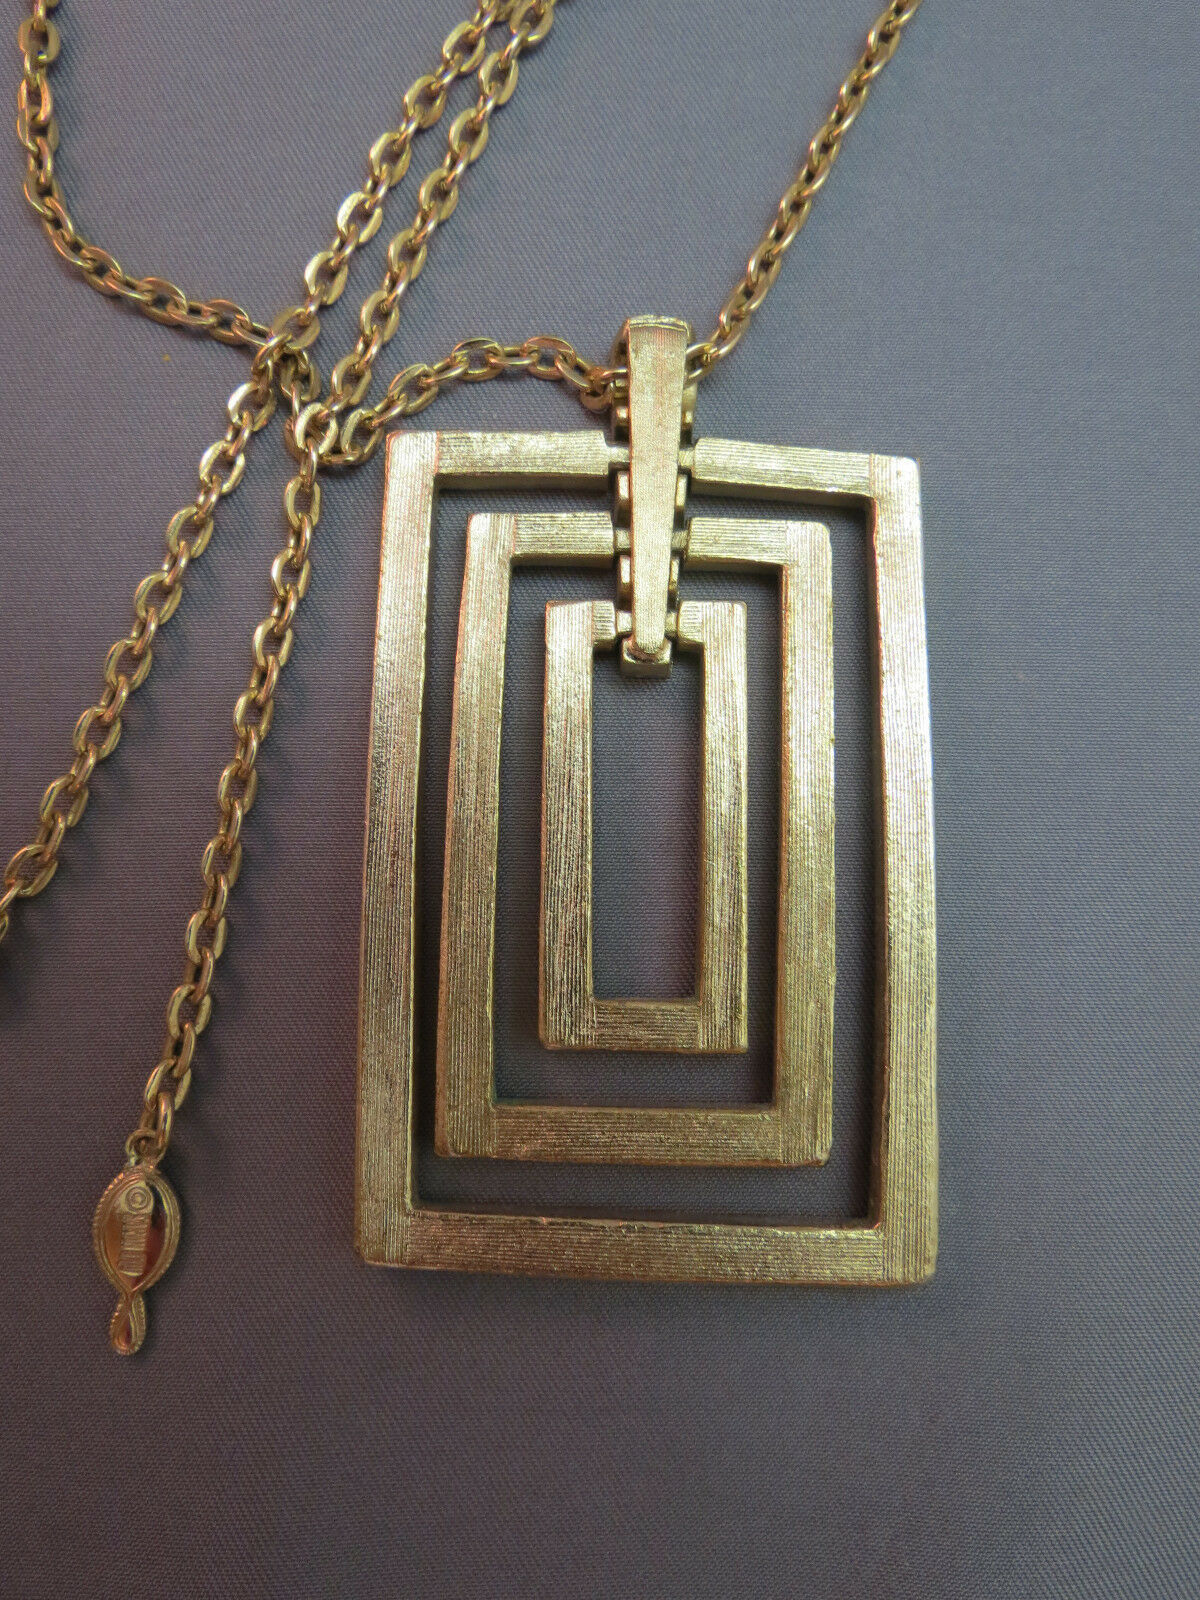 VTG Sarah Coventry Couture Pendant Necklace Chain Rectangular Gold Plate Texture